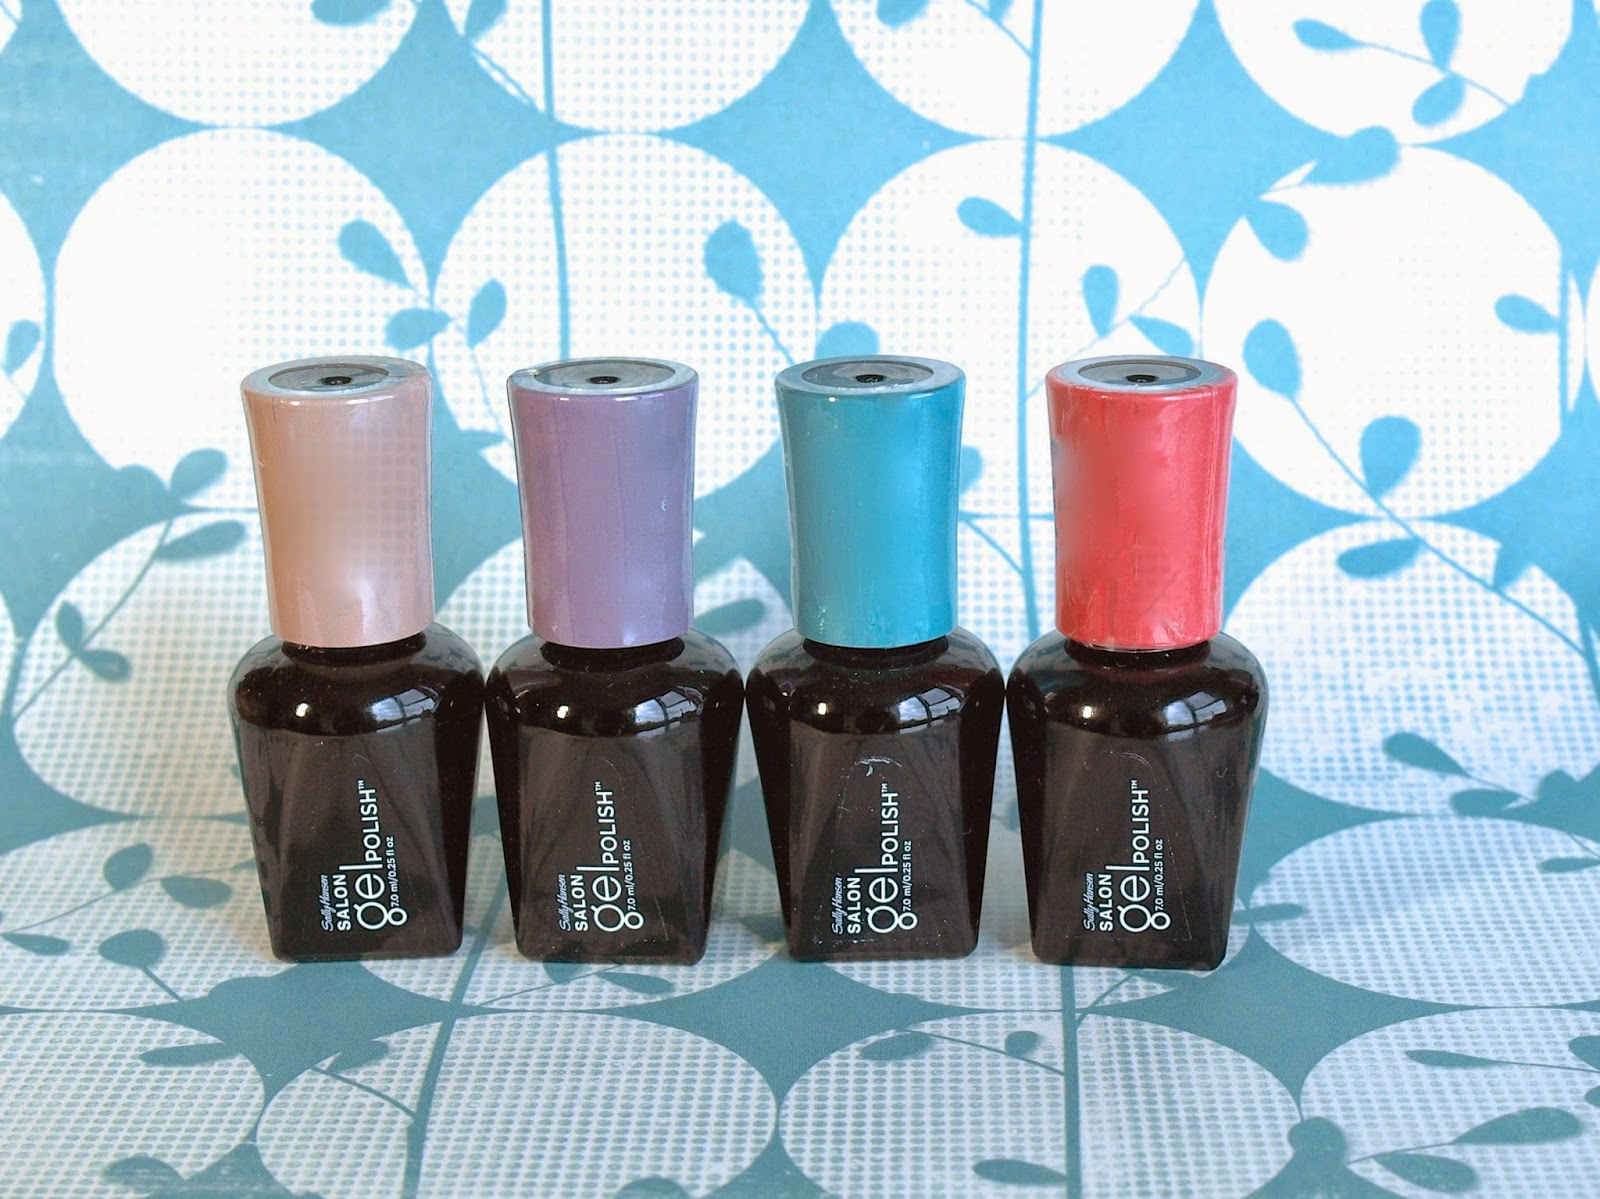 Sally Hansen Salon Gel Polish Collection for Mother's Day Swatches and Review